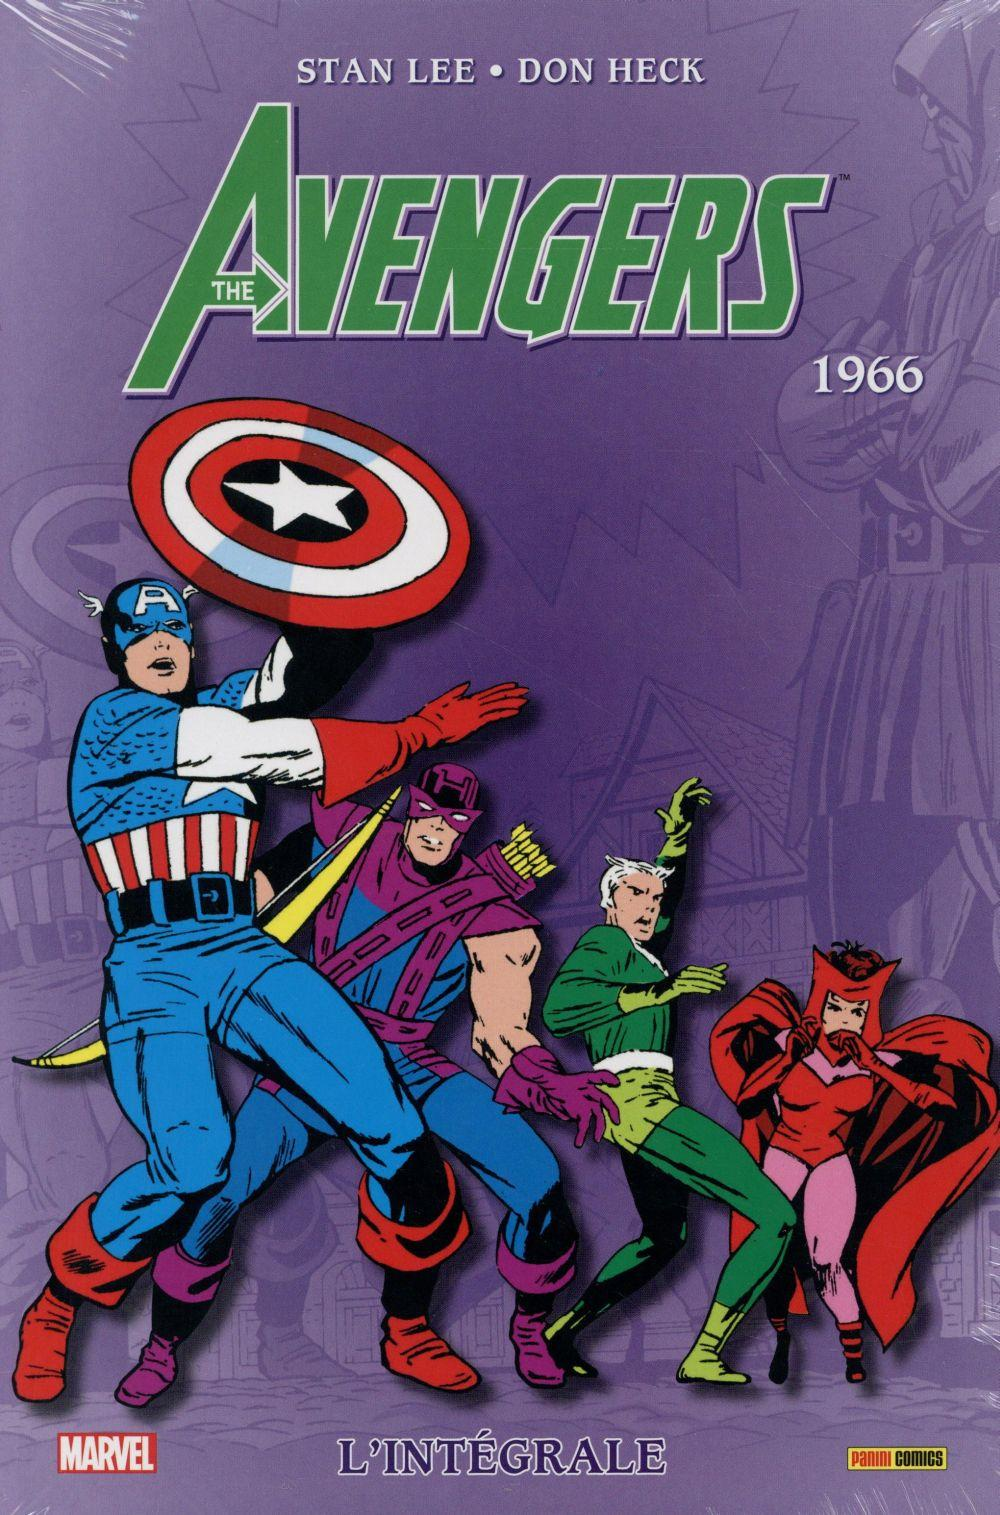 Avengers ; INTEGRALE VOL.3 ; 1966  - Don Heck  - Stan Lee